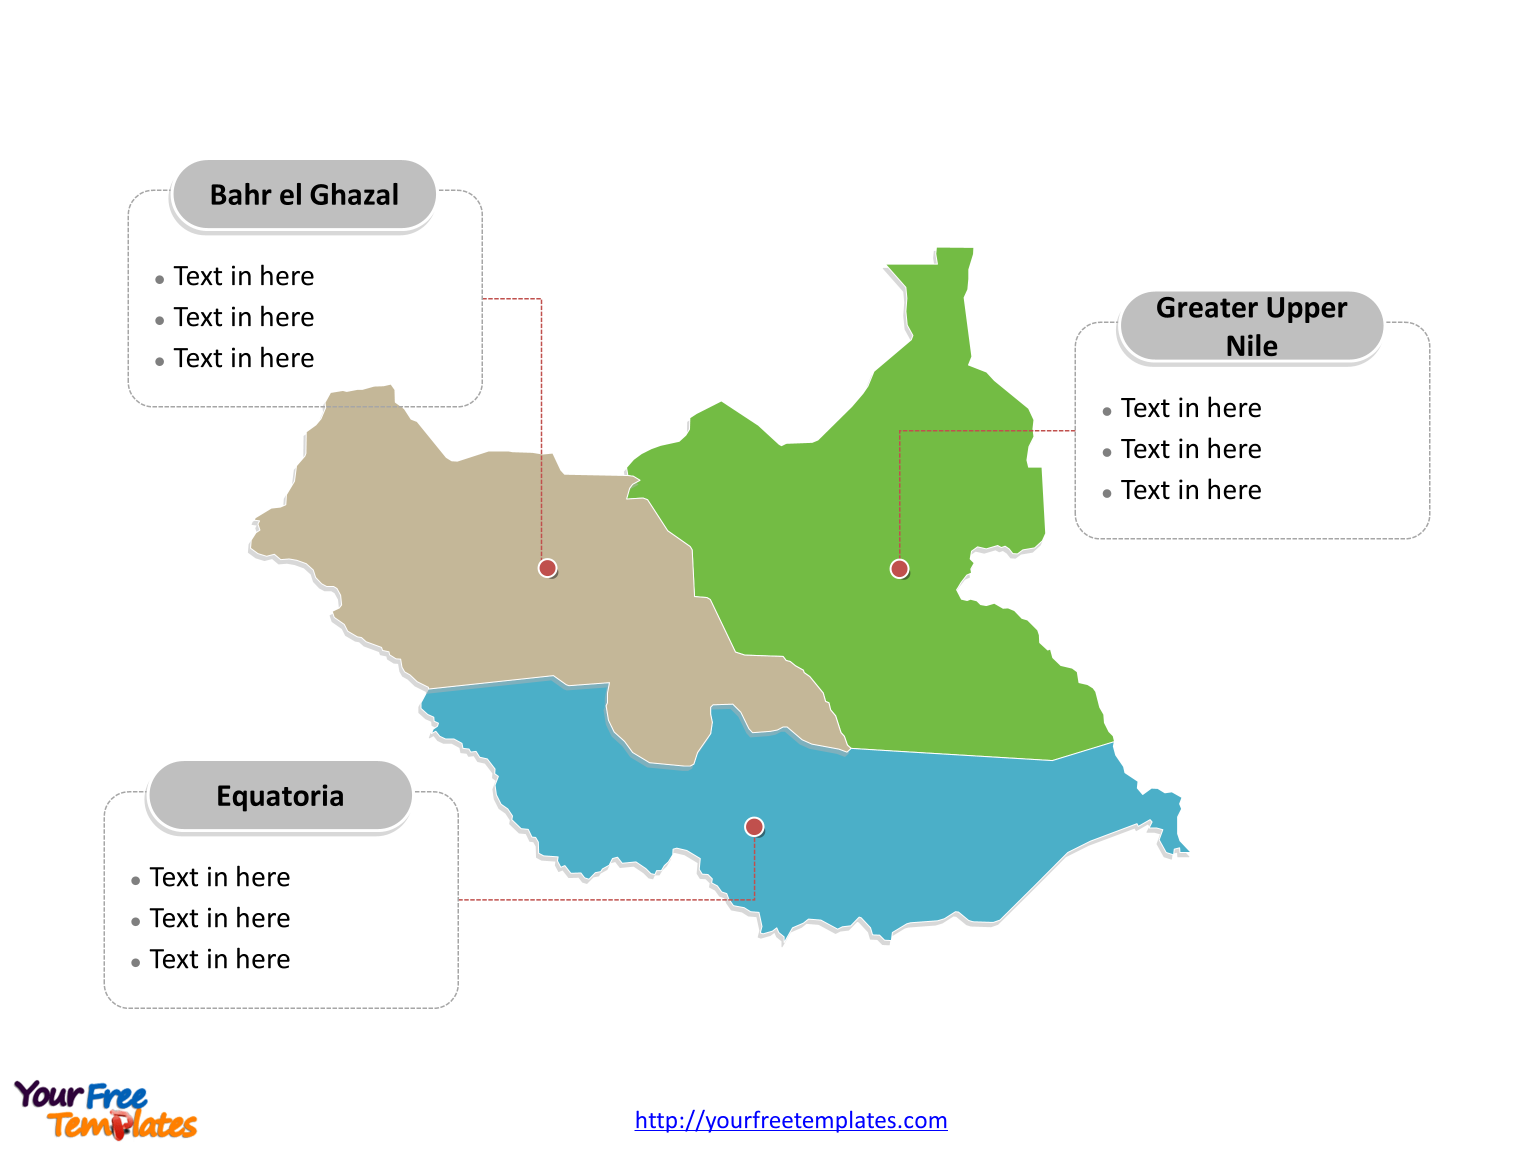 South Sudan Outline map labeled with cities